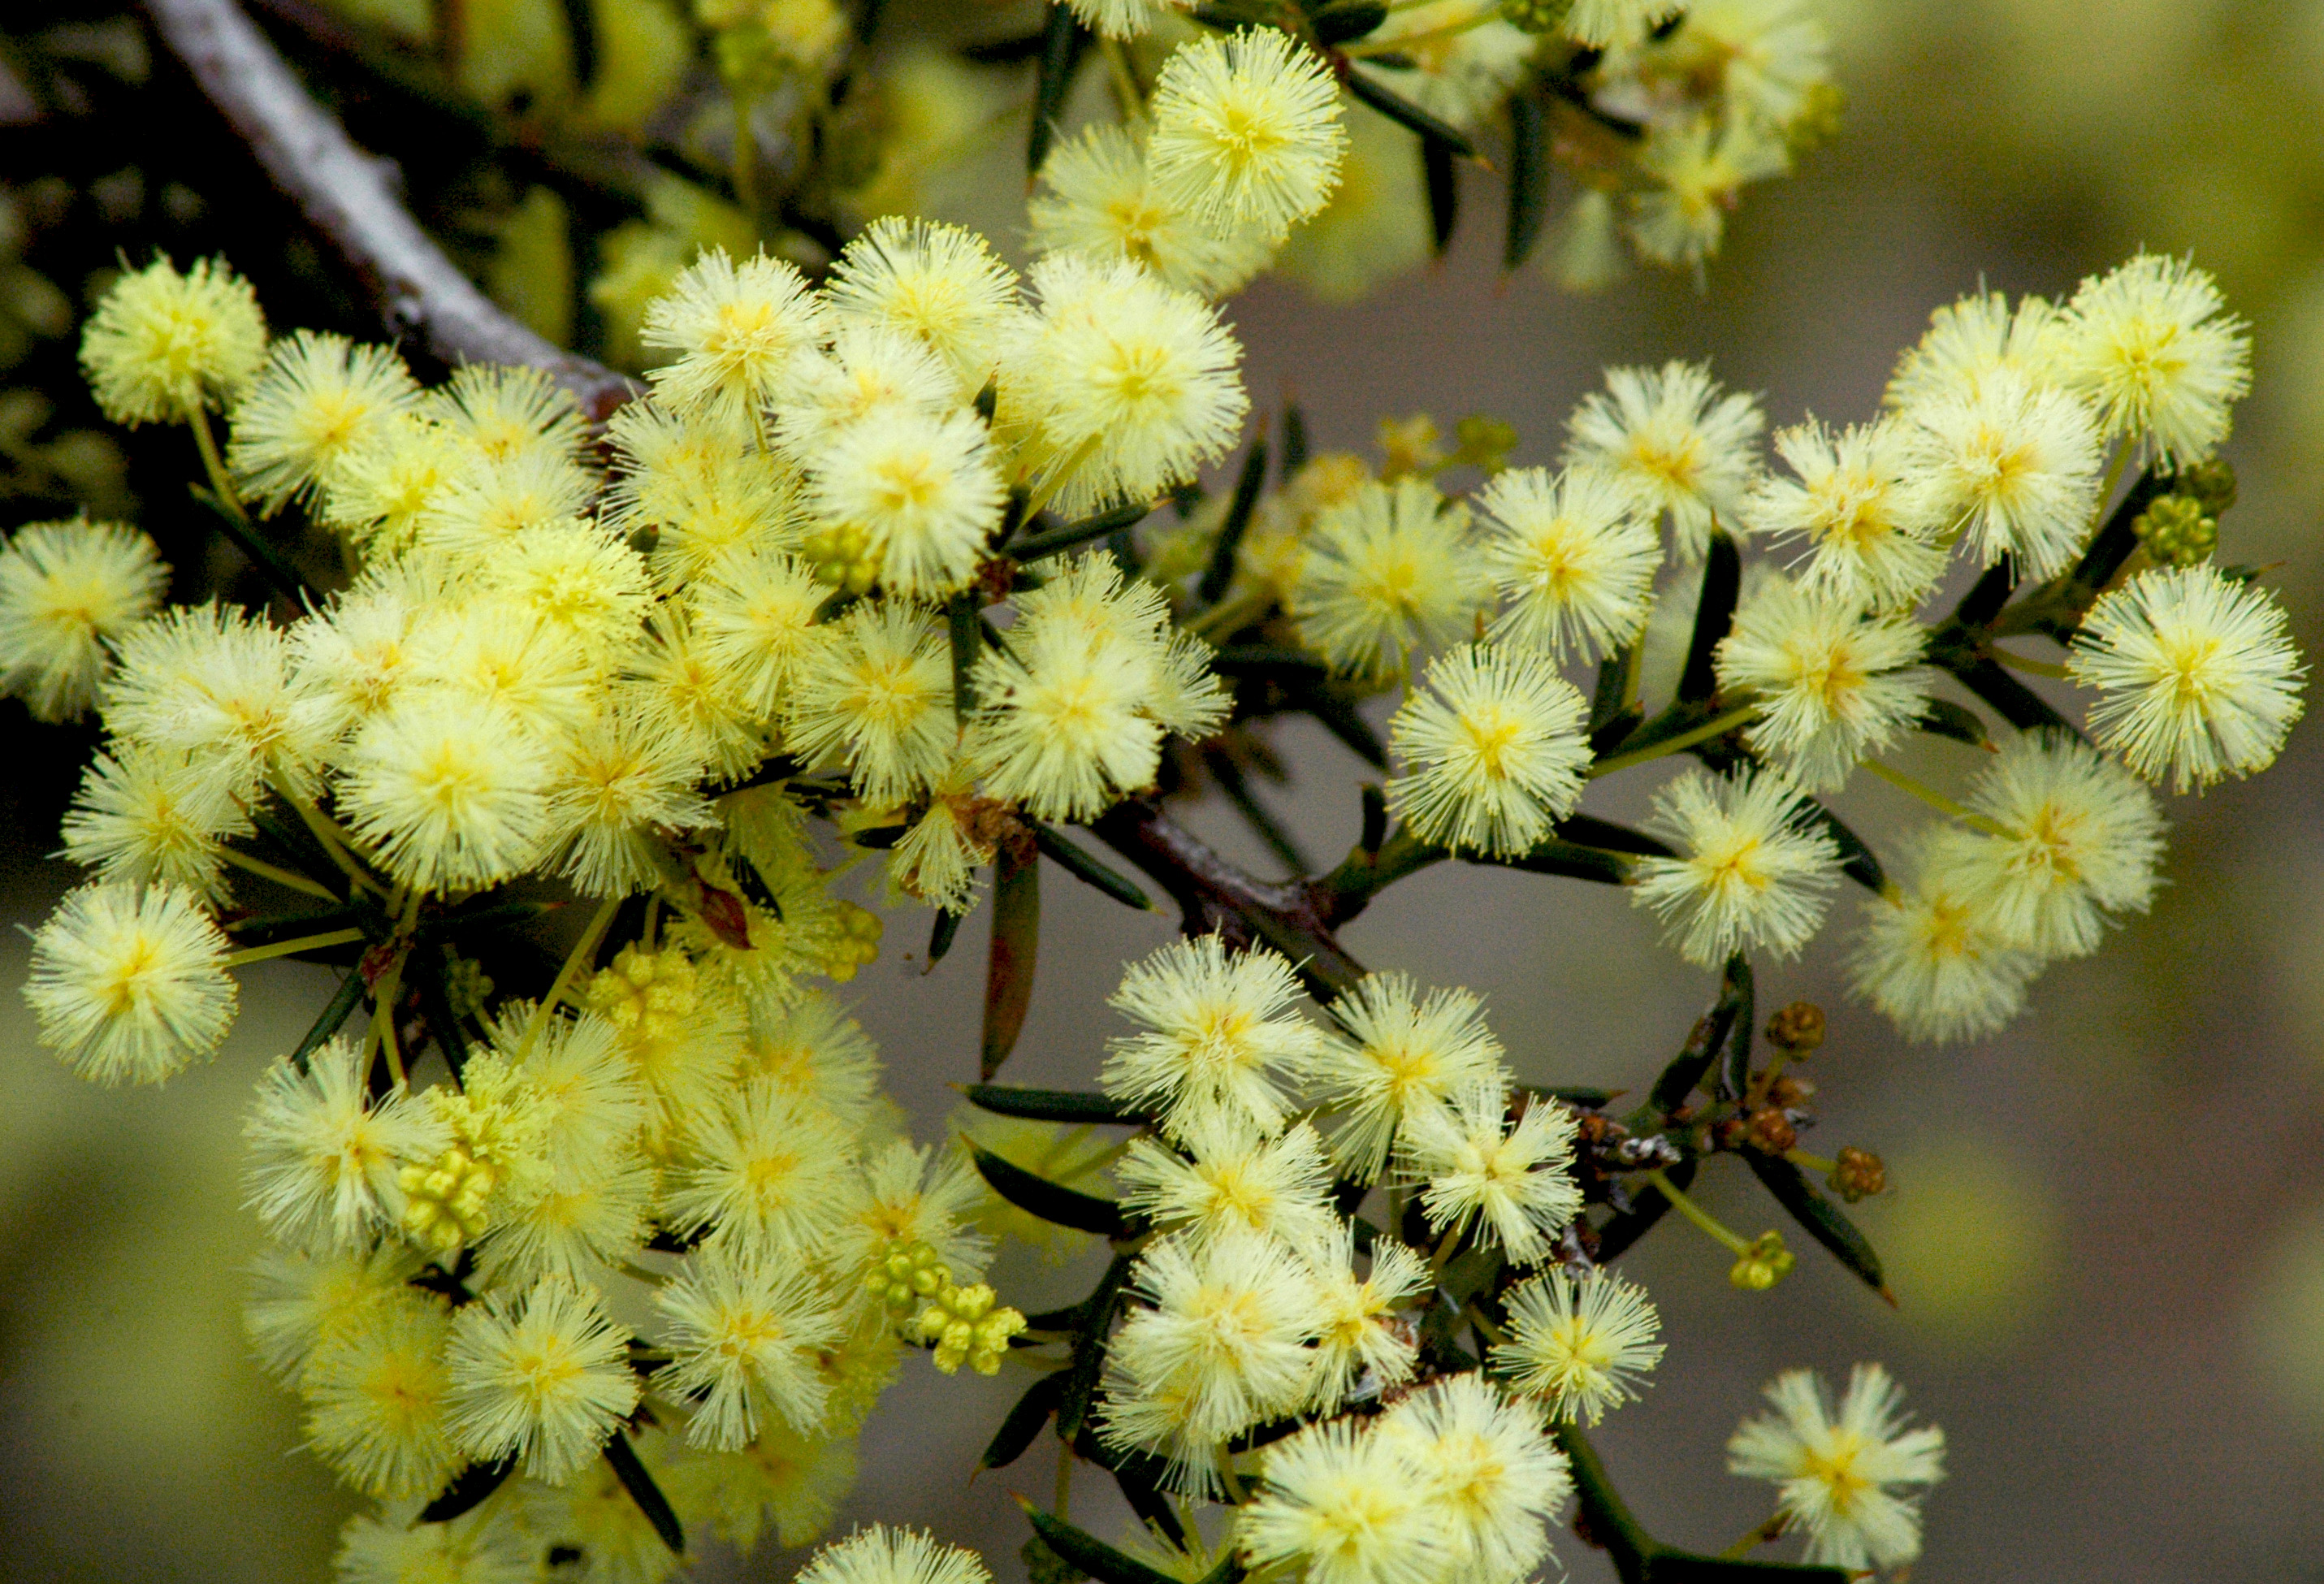 File:Acacia genistifolia.jpg - Wikimedia Commons